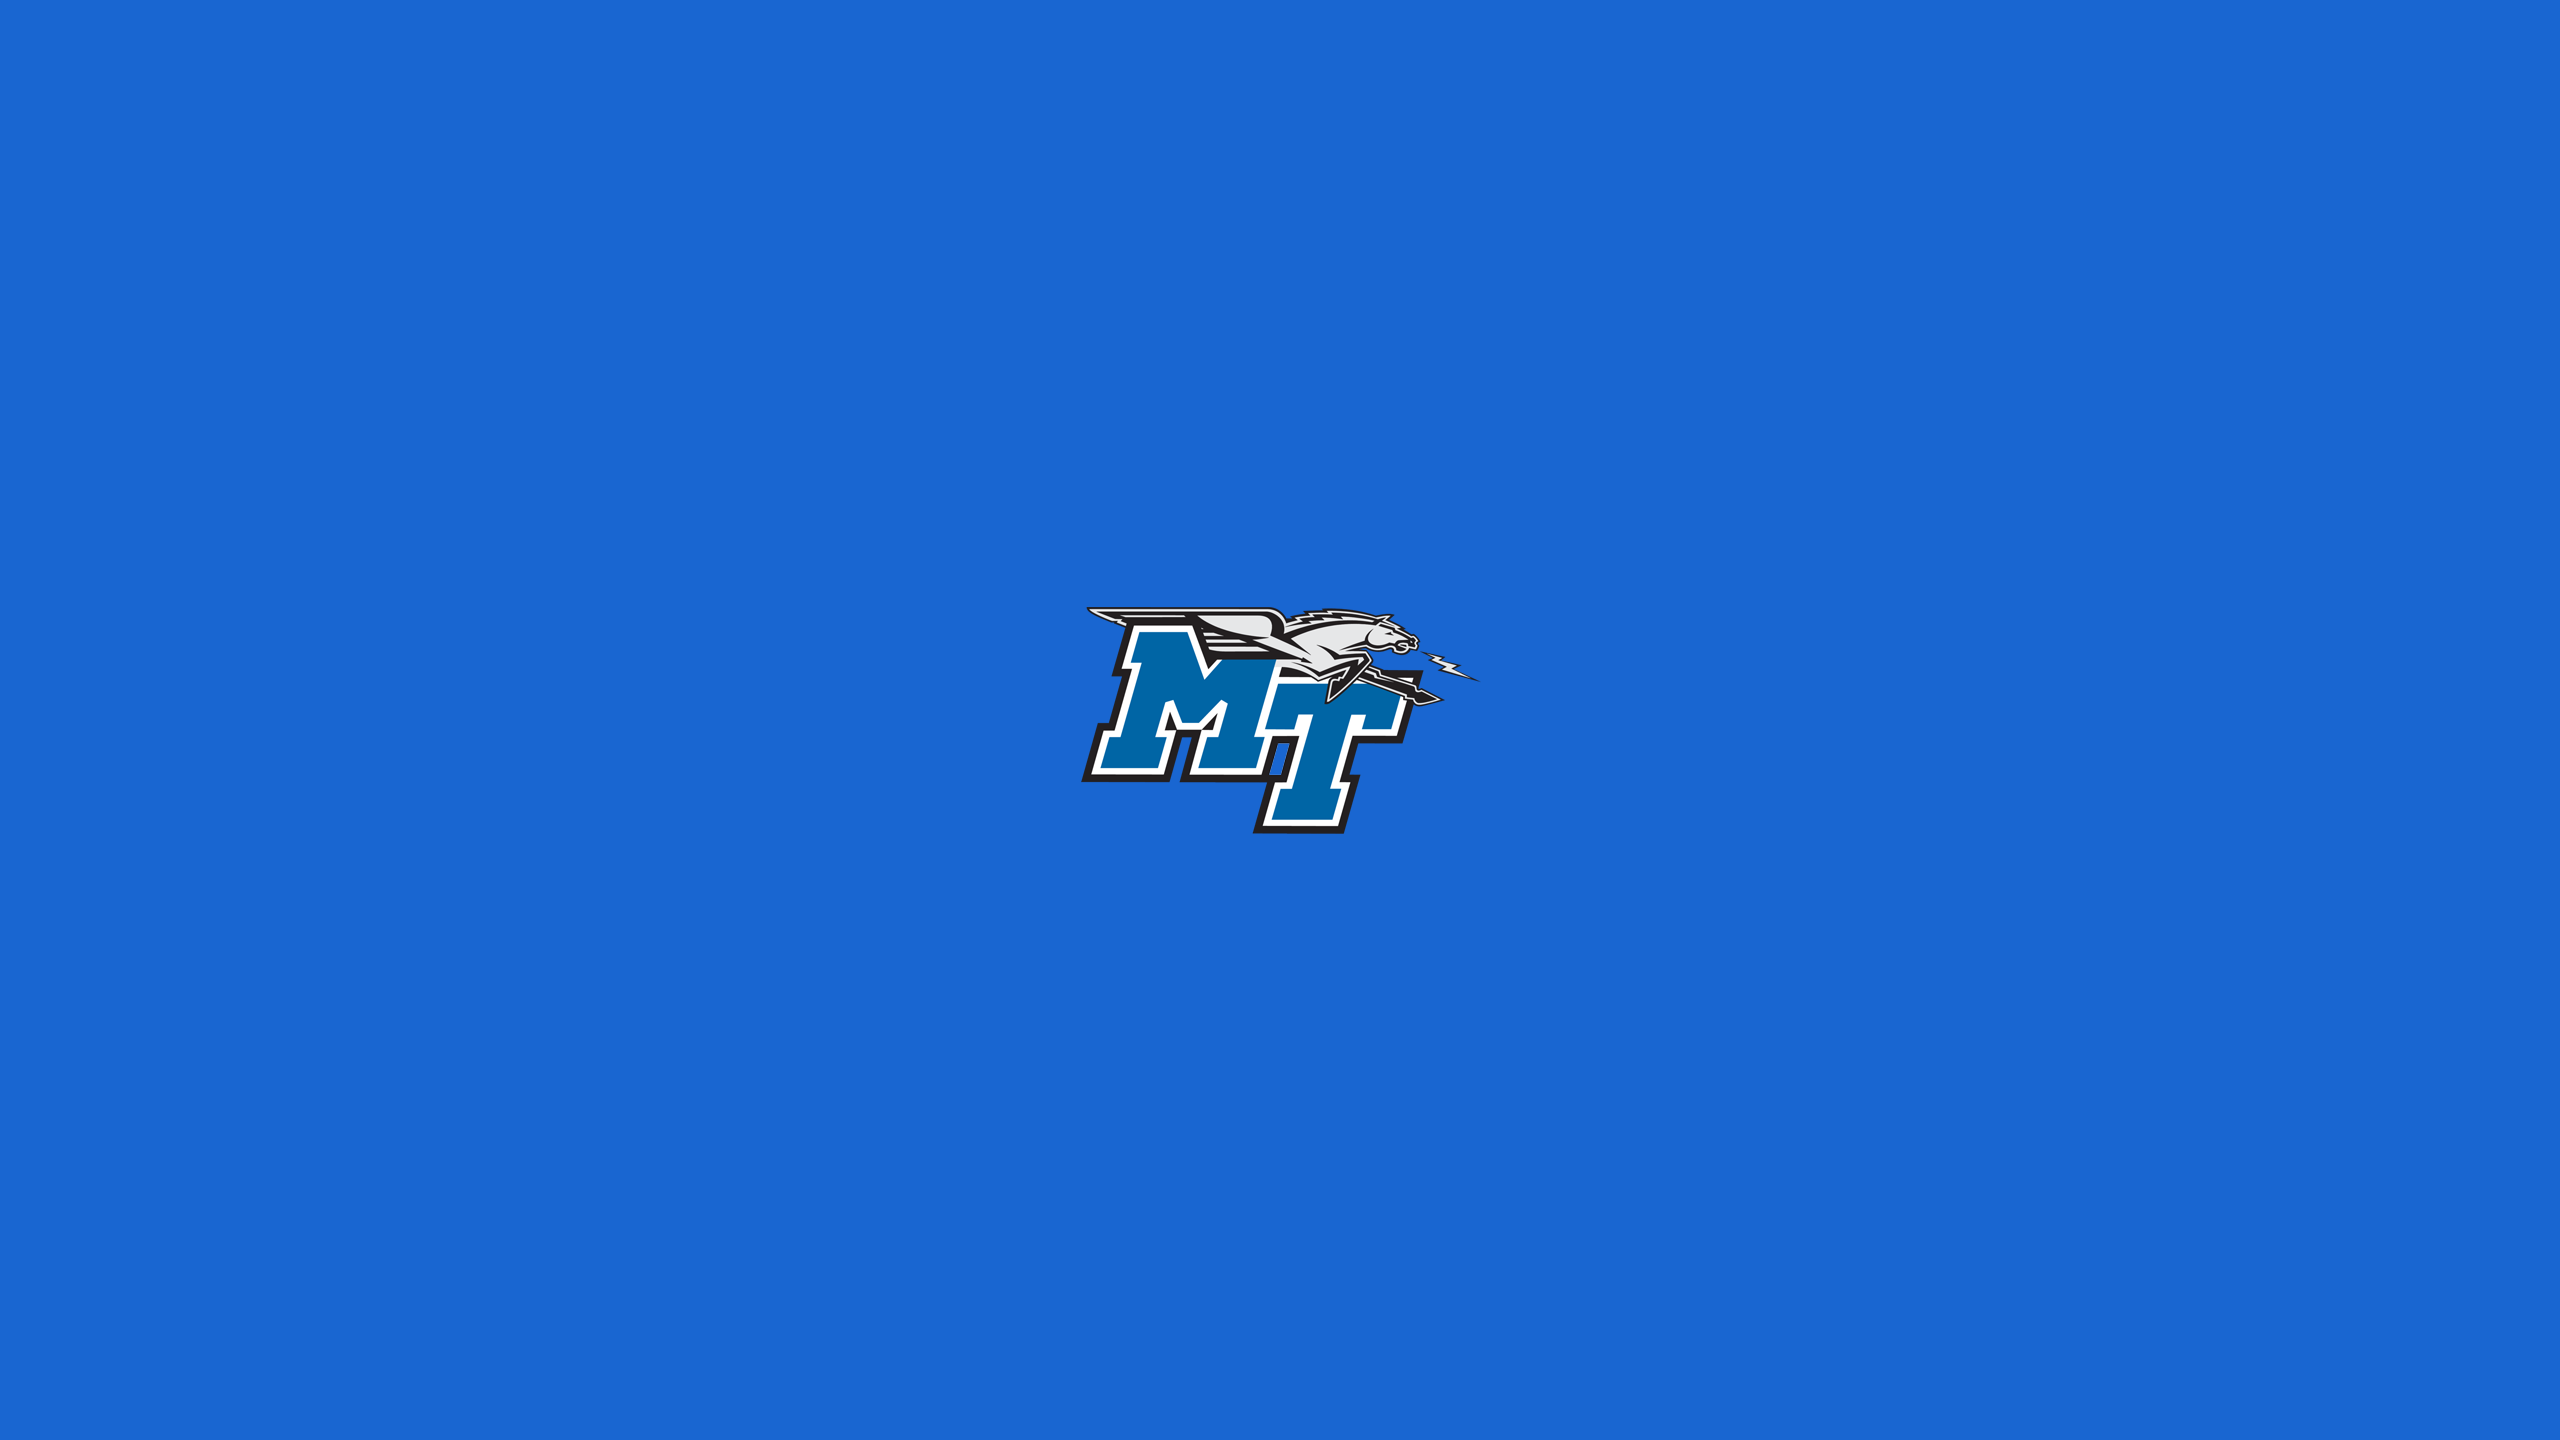 Middle Tennessee State University Blue Raiders